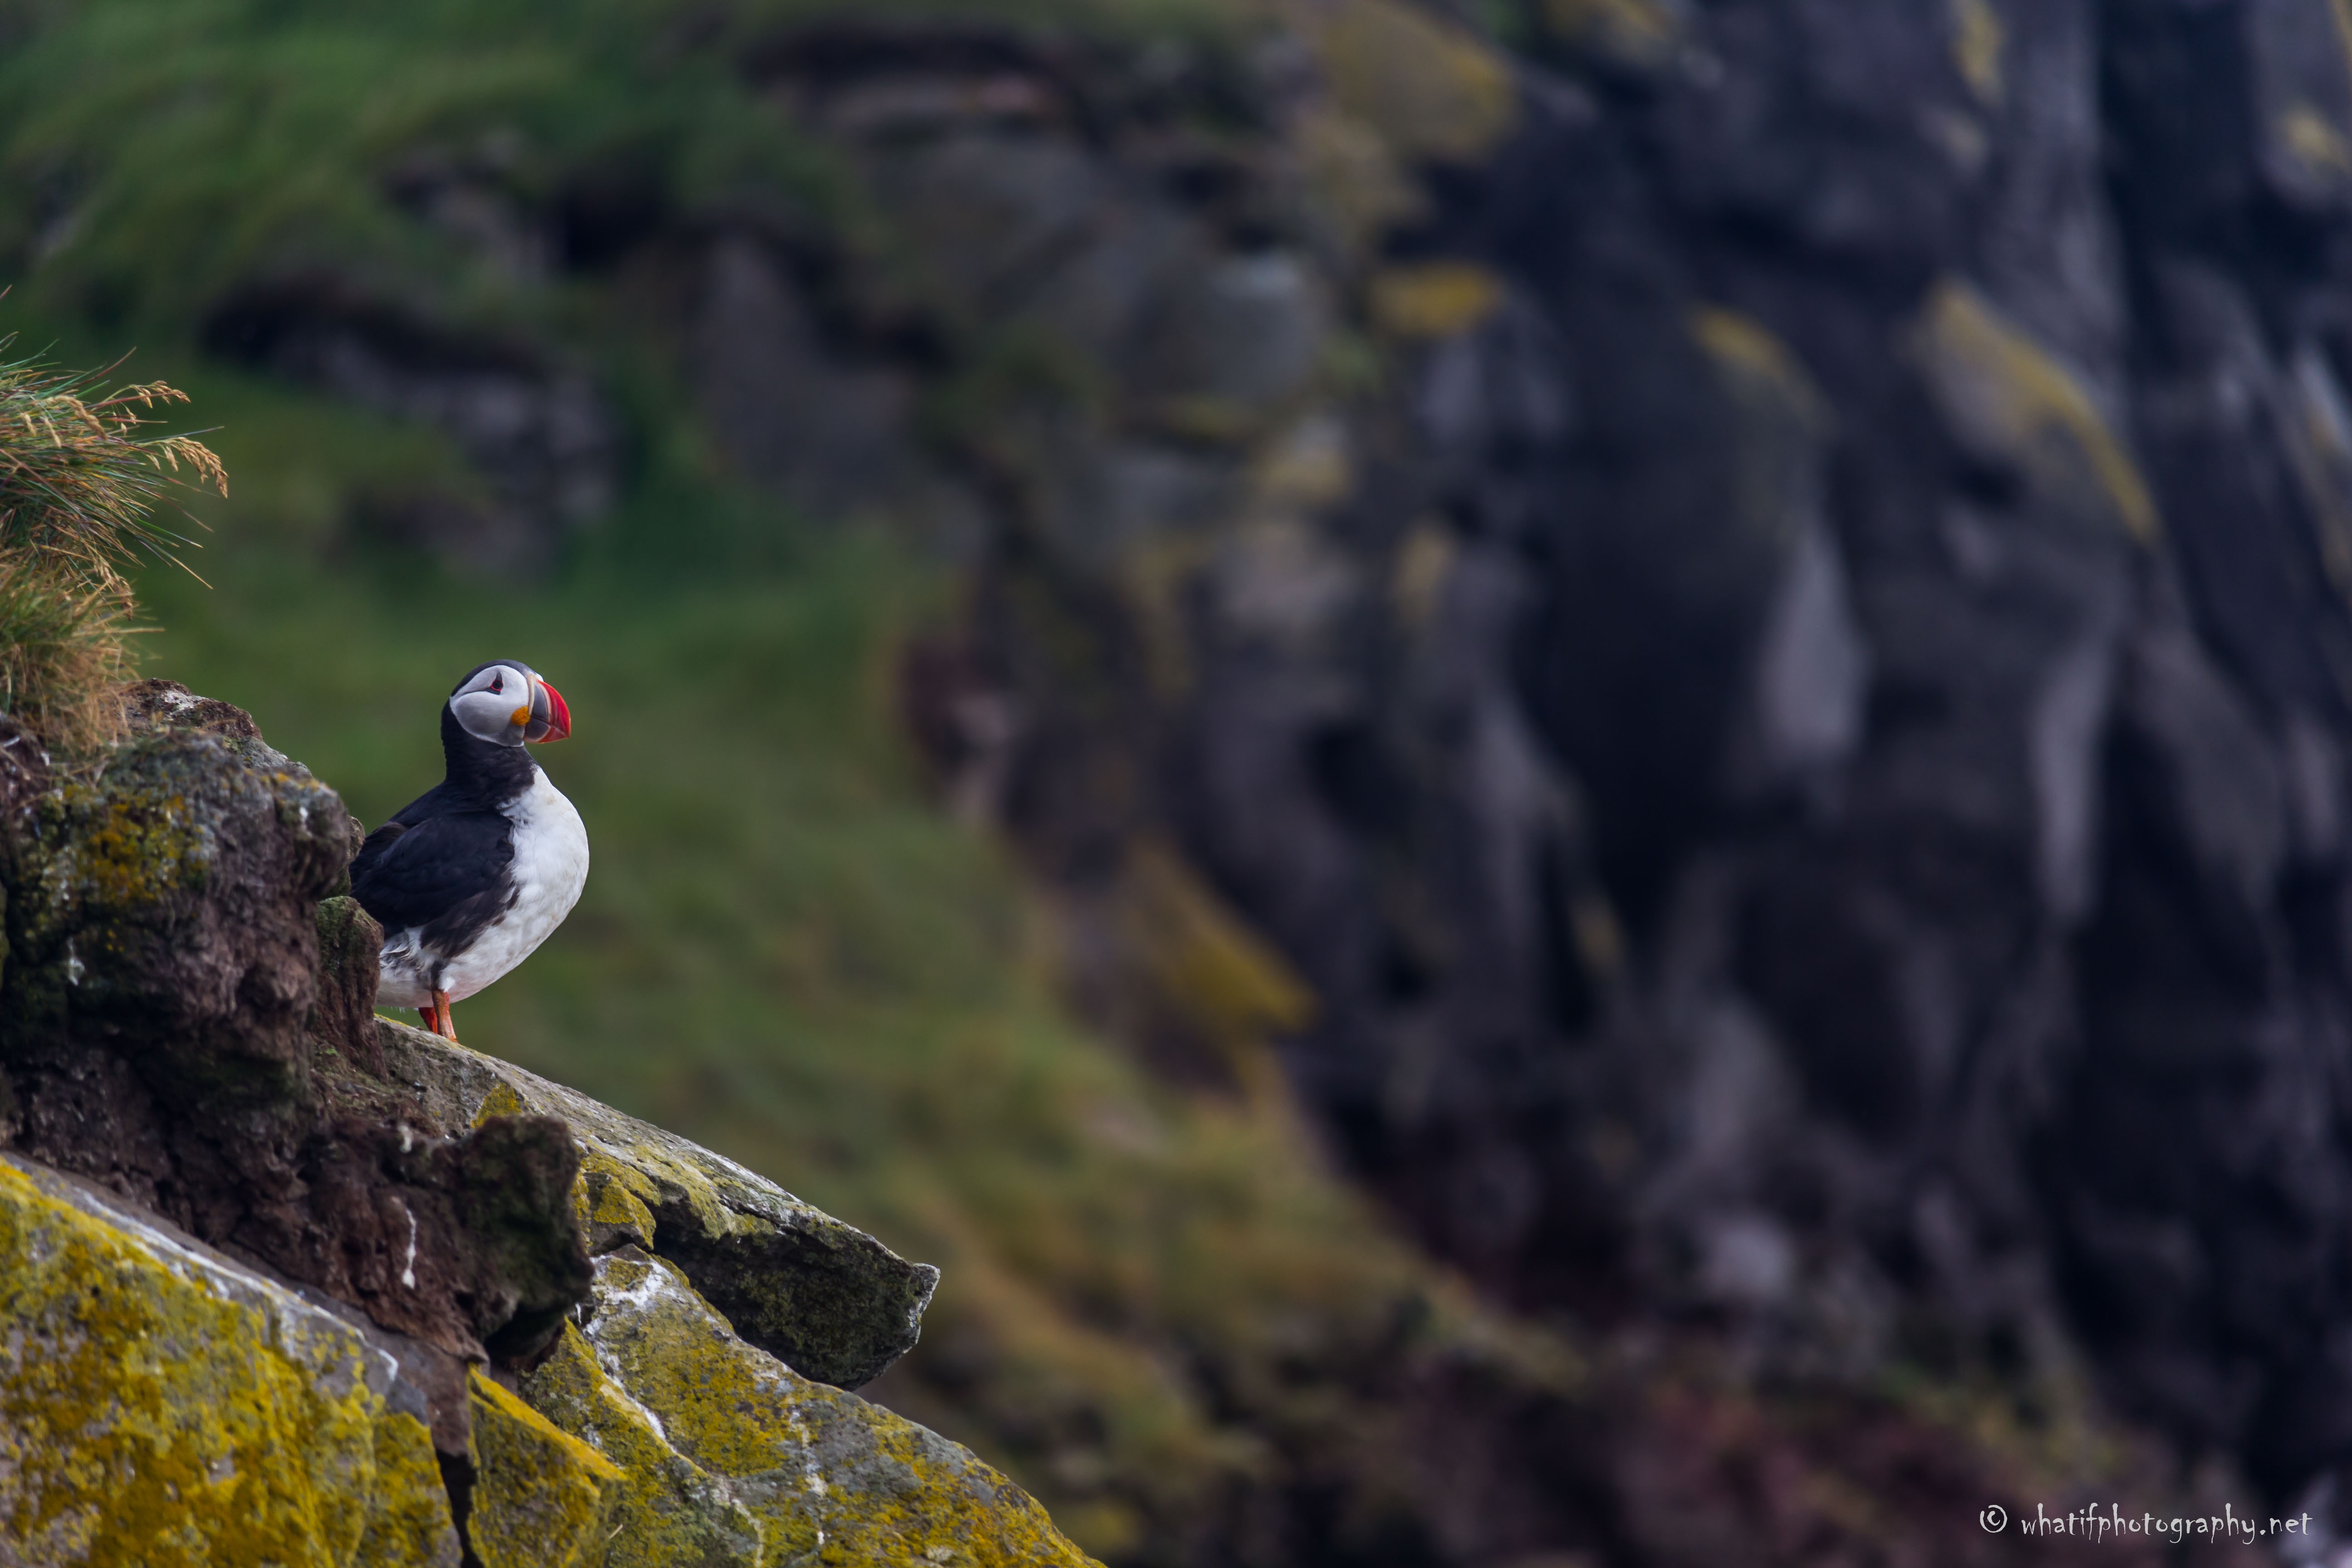 Puffin in the edge of the world